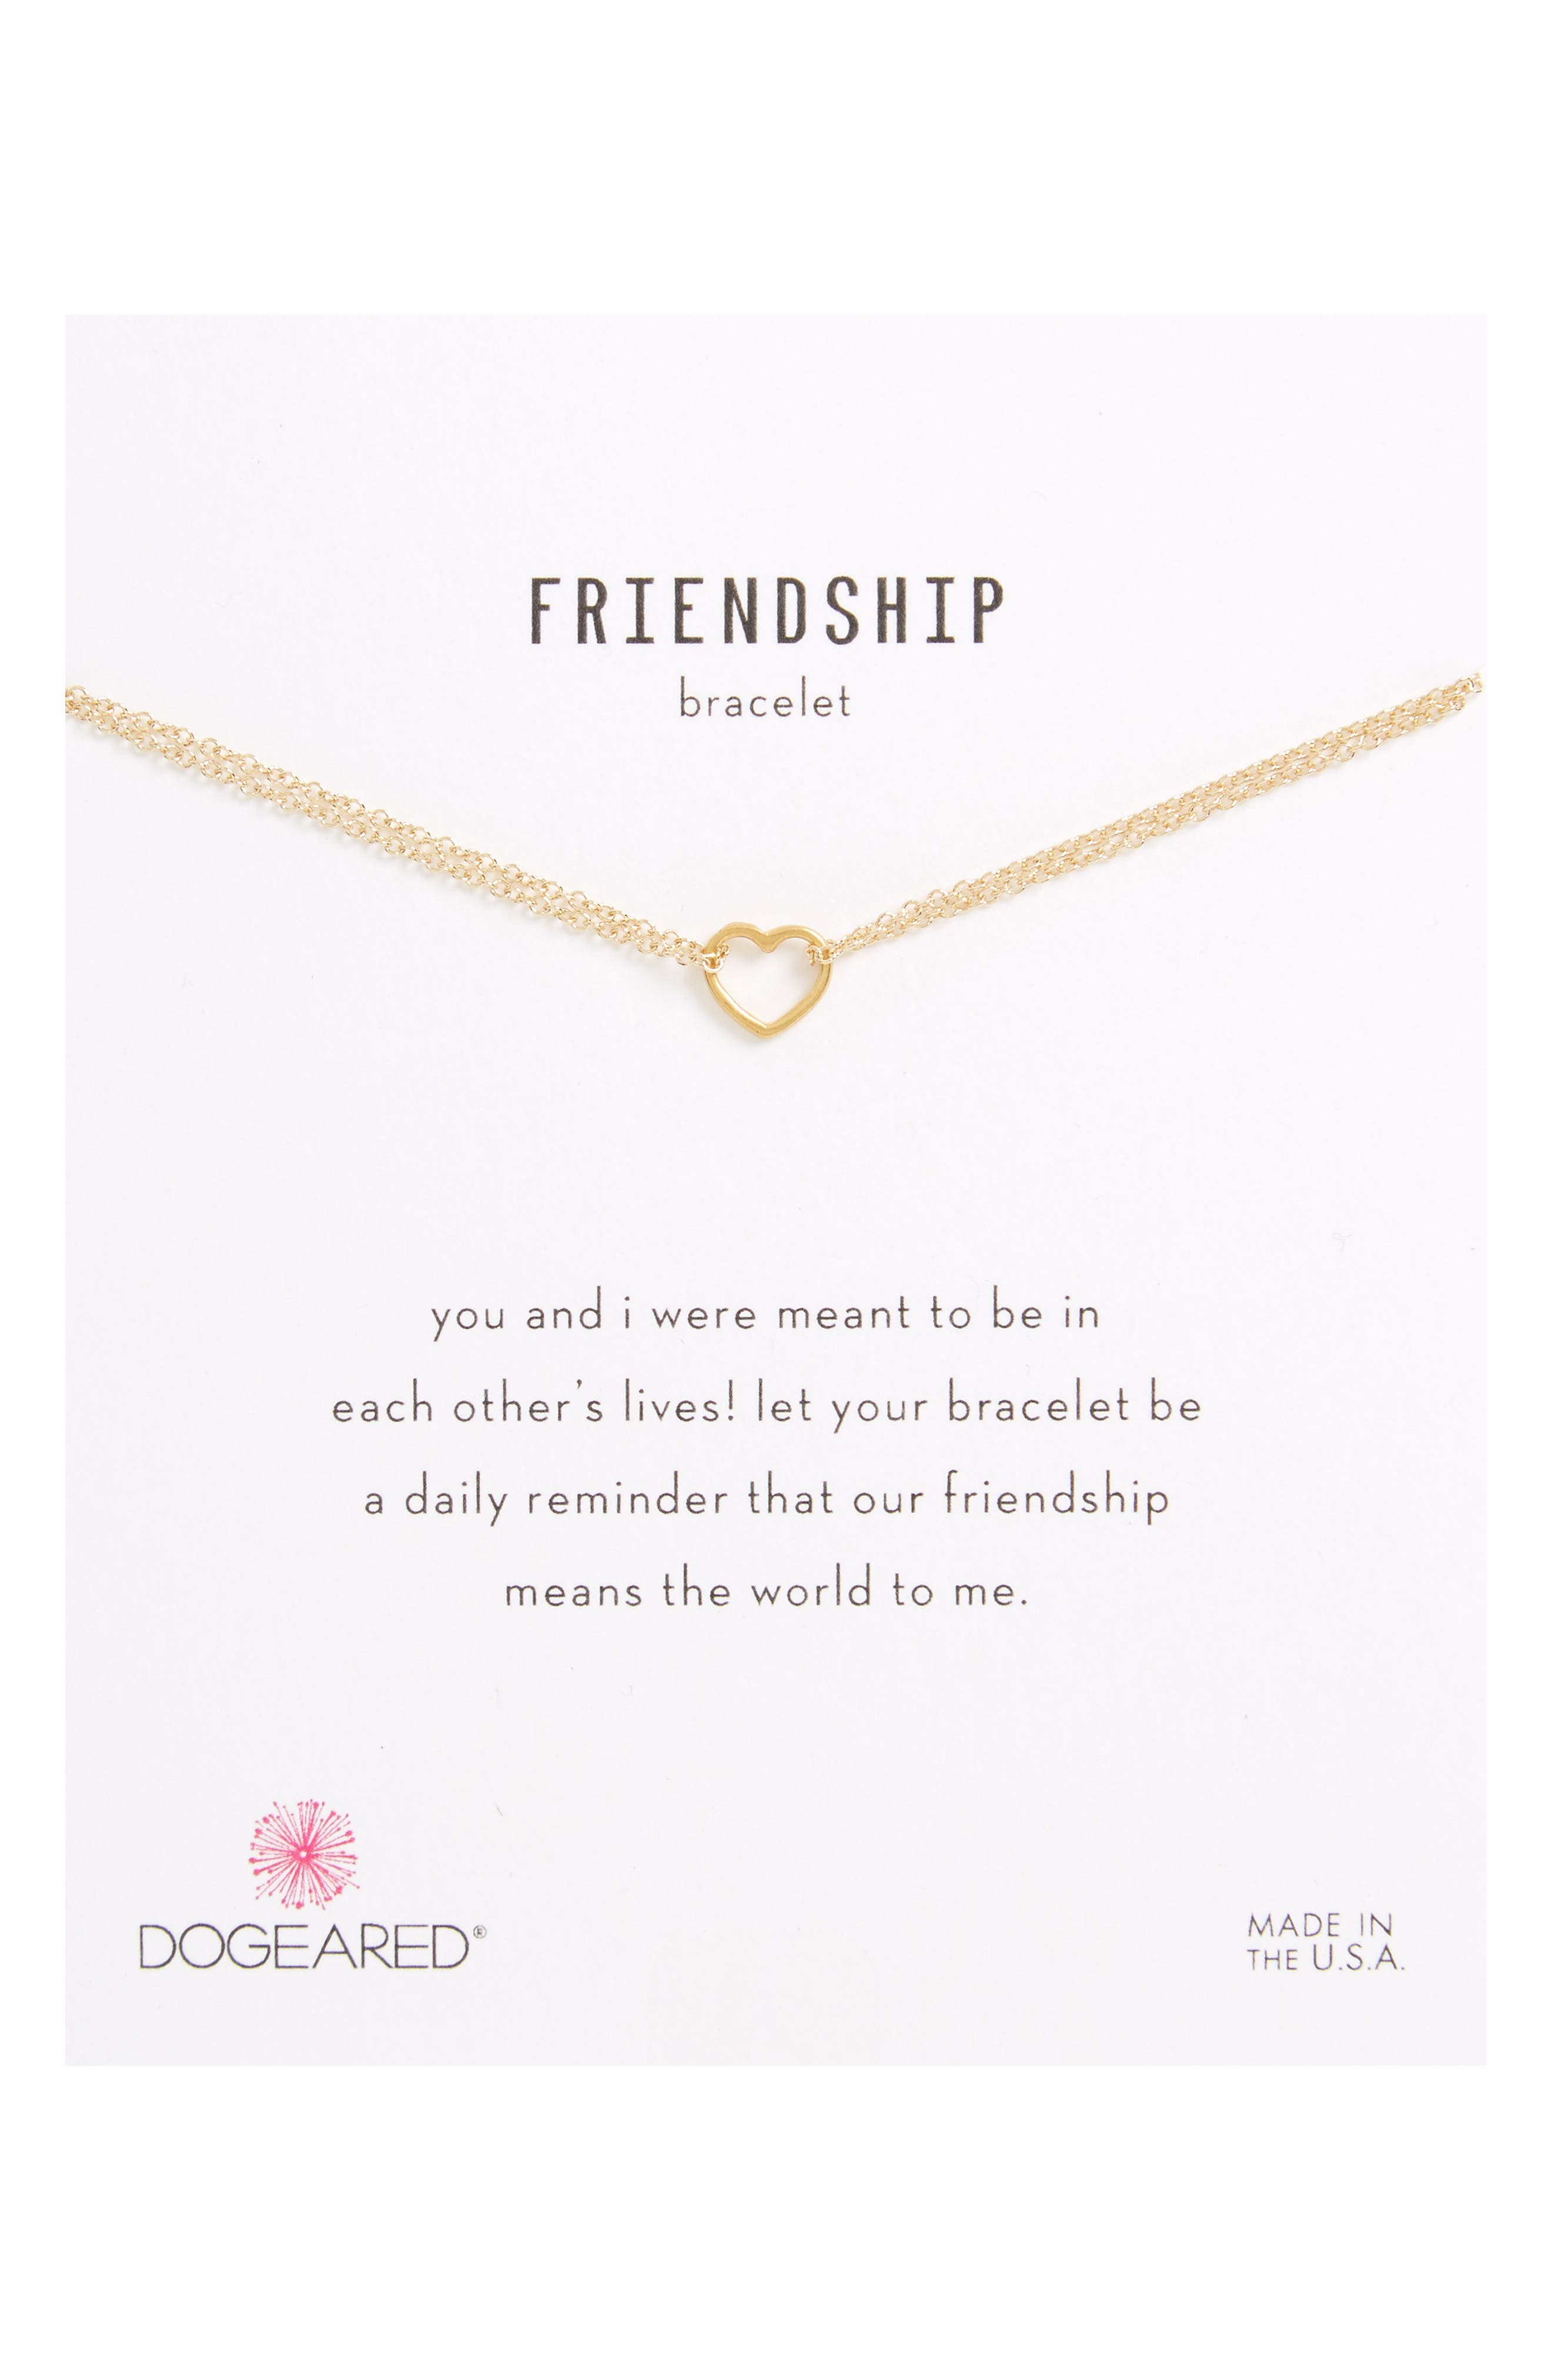 Alternate Image 1 Selected - Dogeared Friendship Small Open Heart Charm Chain Bracelet